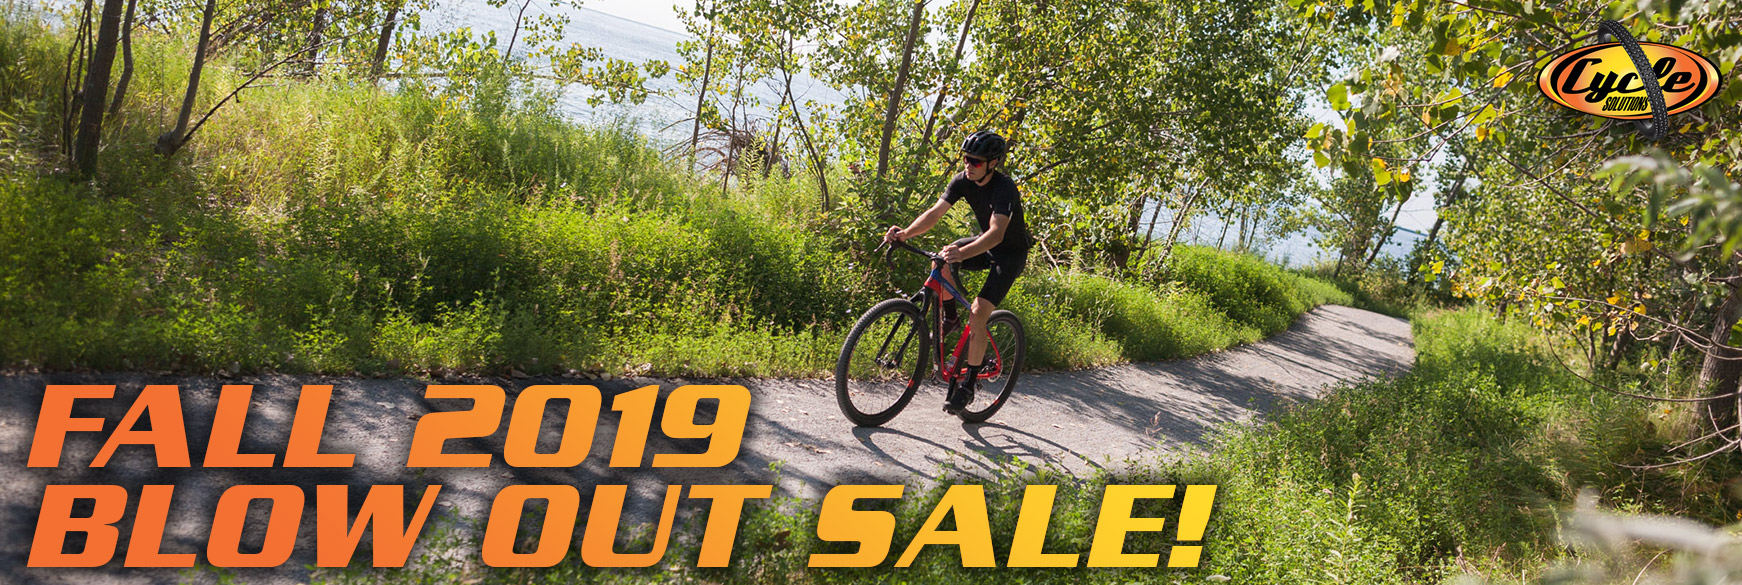 2019 FALL BLOWOUT SALE!